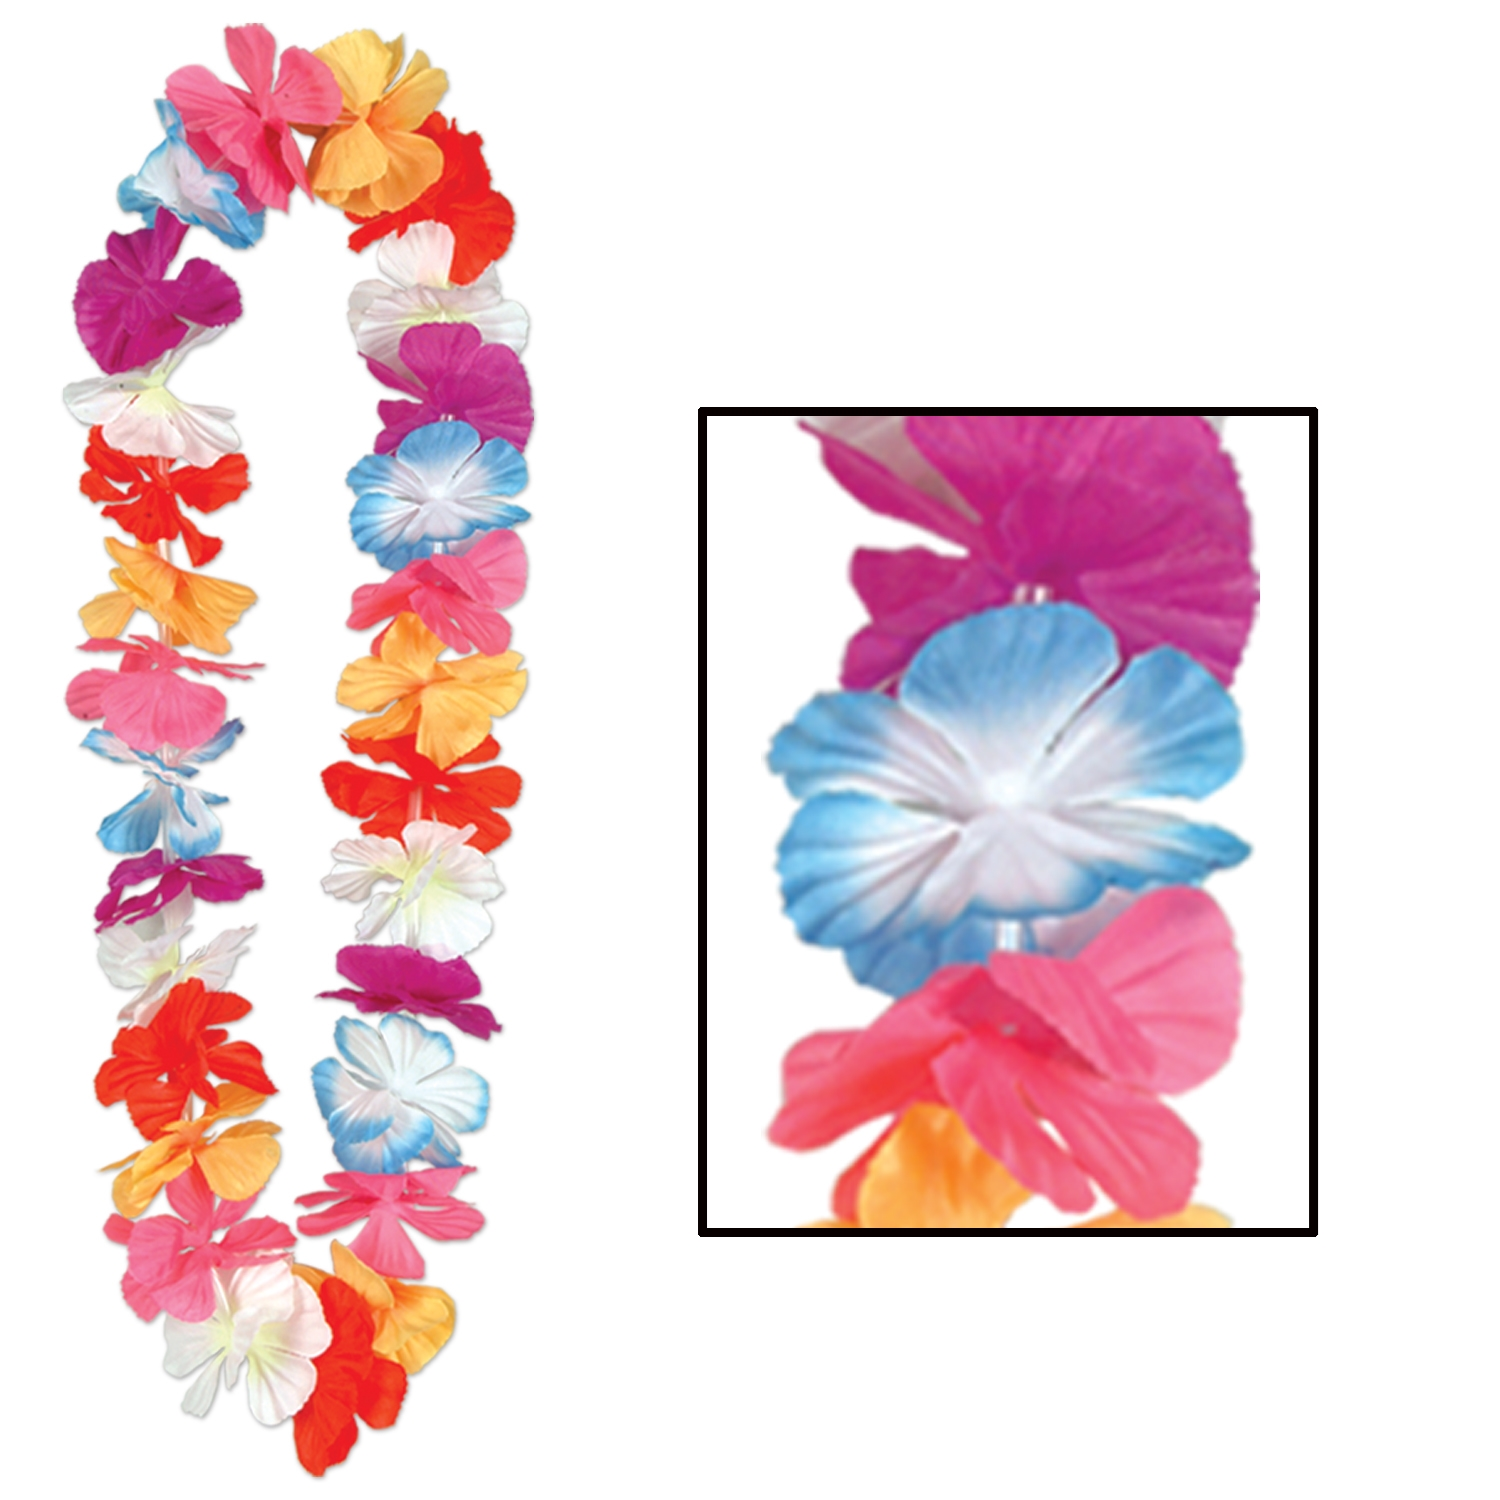 Wholesale Hawaiian Party Leis Wristbands Page 2